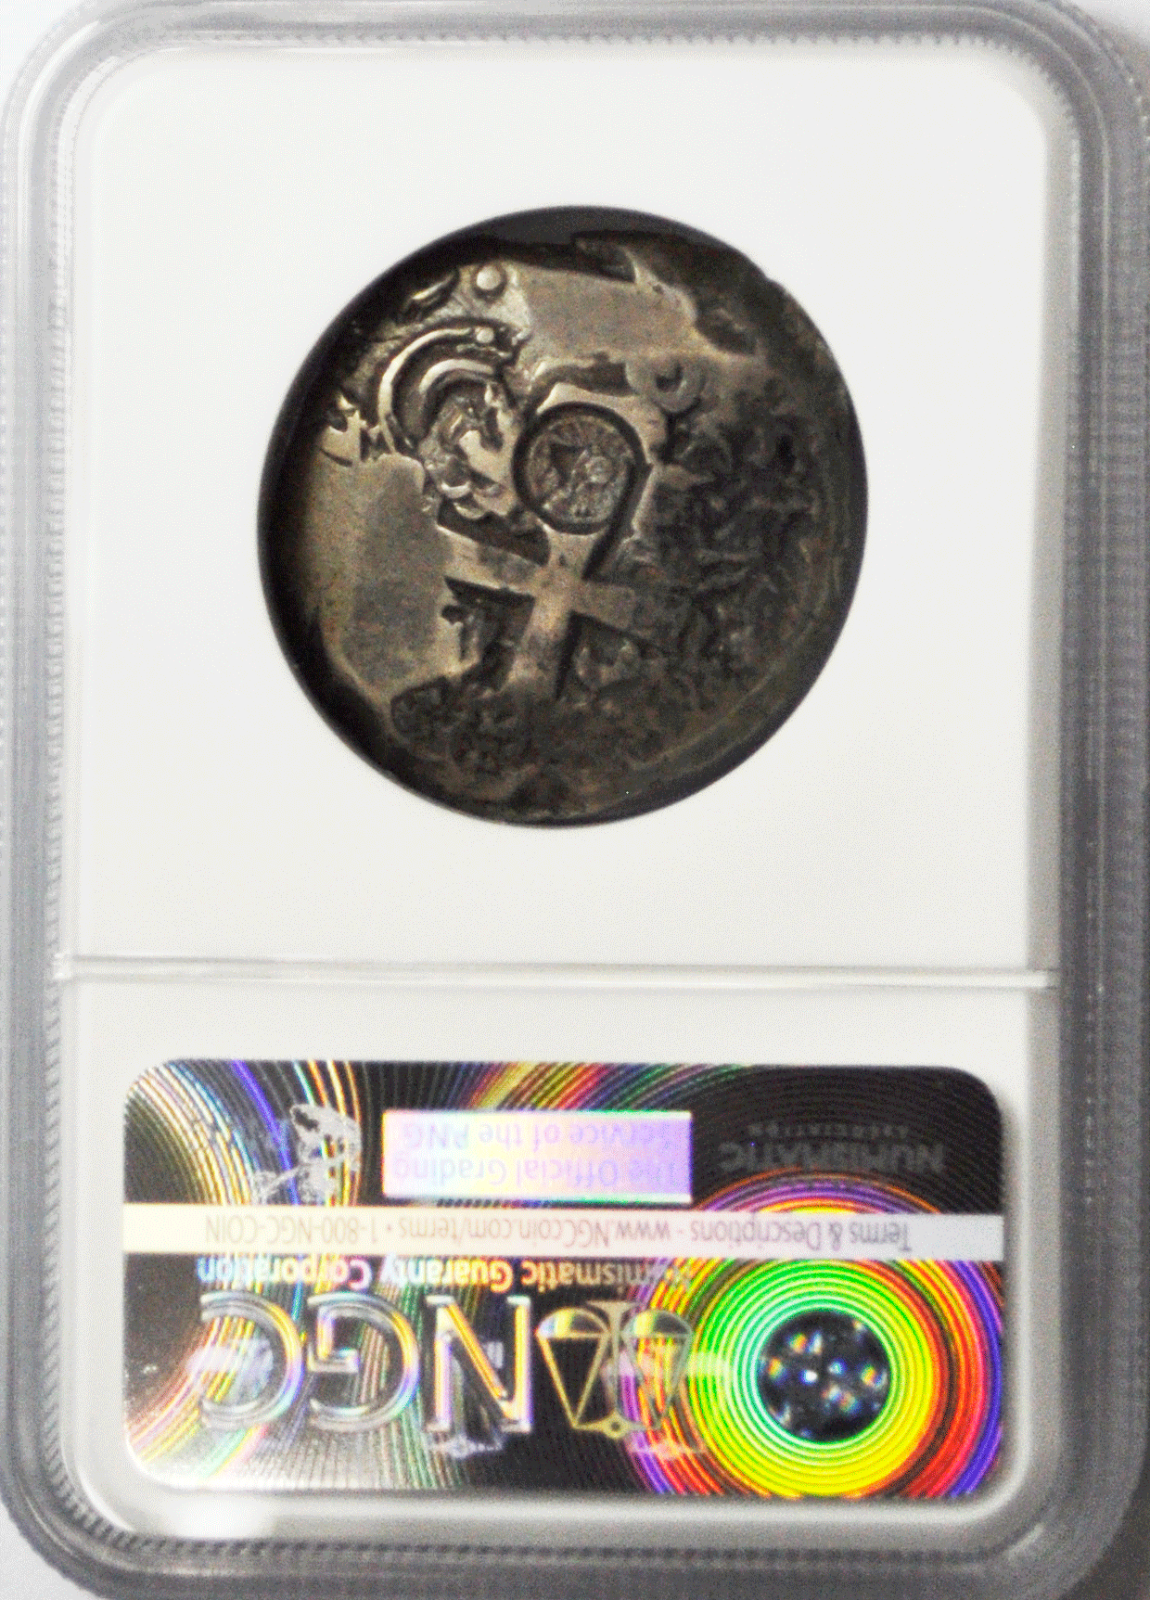 1839 Guatemala 8R T-II C/S Bolivia 8 Reales VF20 26.84g NGC Top Pop Counterstamp